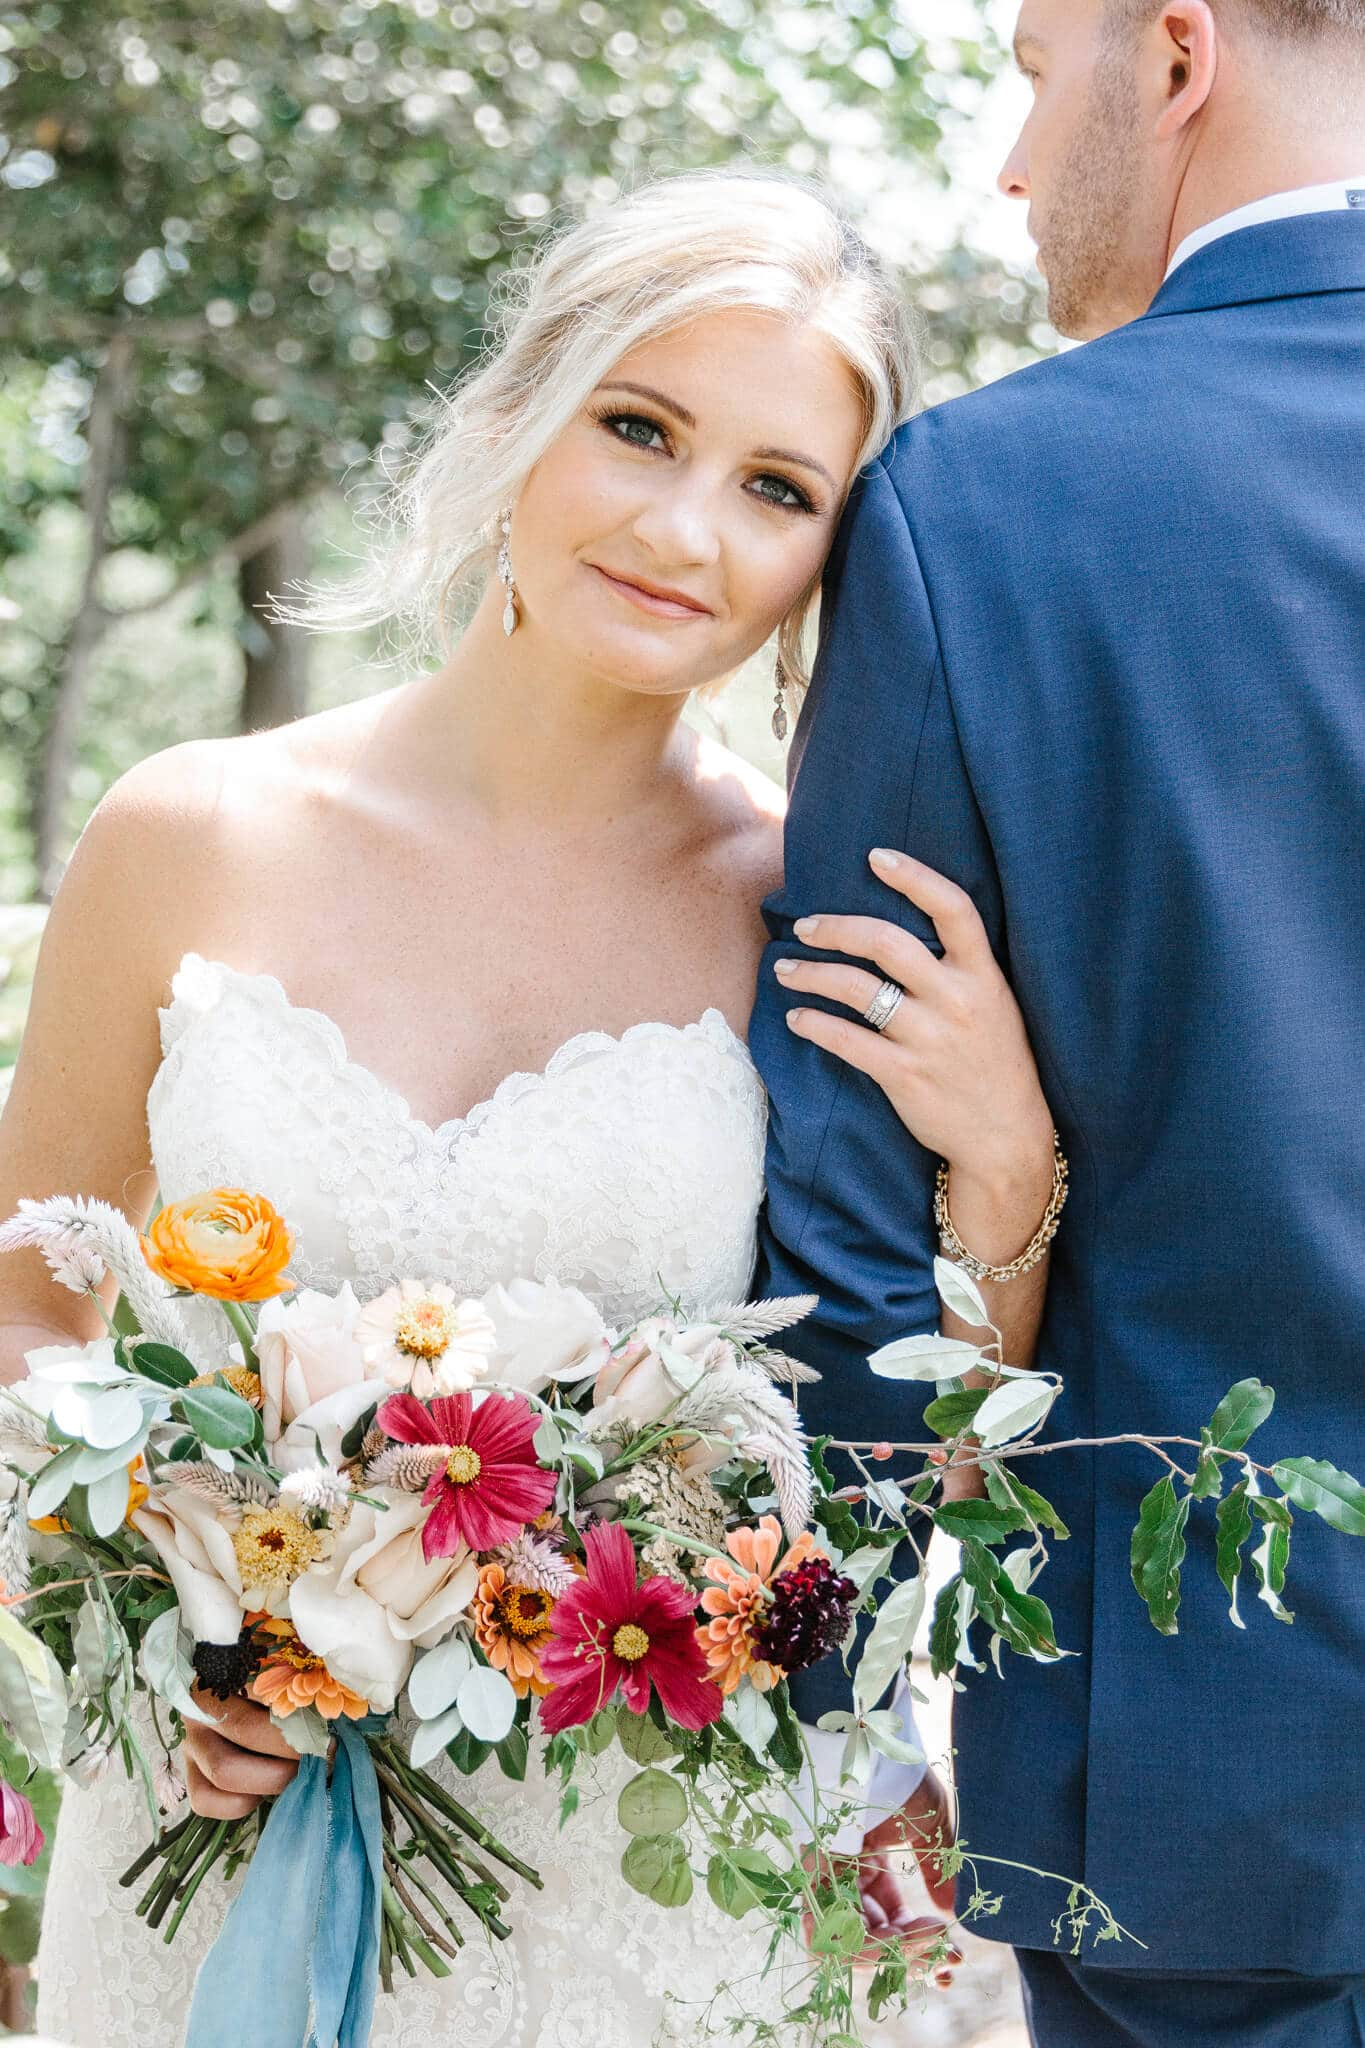 Dusty Blue Styled Wedding Shoot is your must have wedding day decorations inspiration. From wedding hair, wedding centerpieces and wedding flowers to wedding dress, bridesmaid dress and wedding venues, this gorgeous shoot will spark all your wedding ideas! A gorgeous fall wedding is happening now.